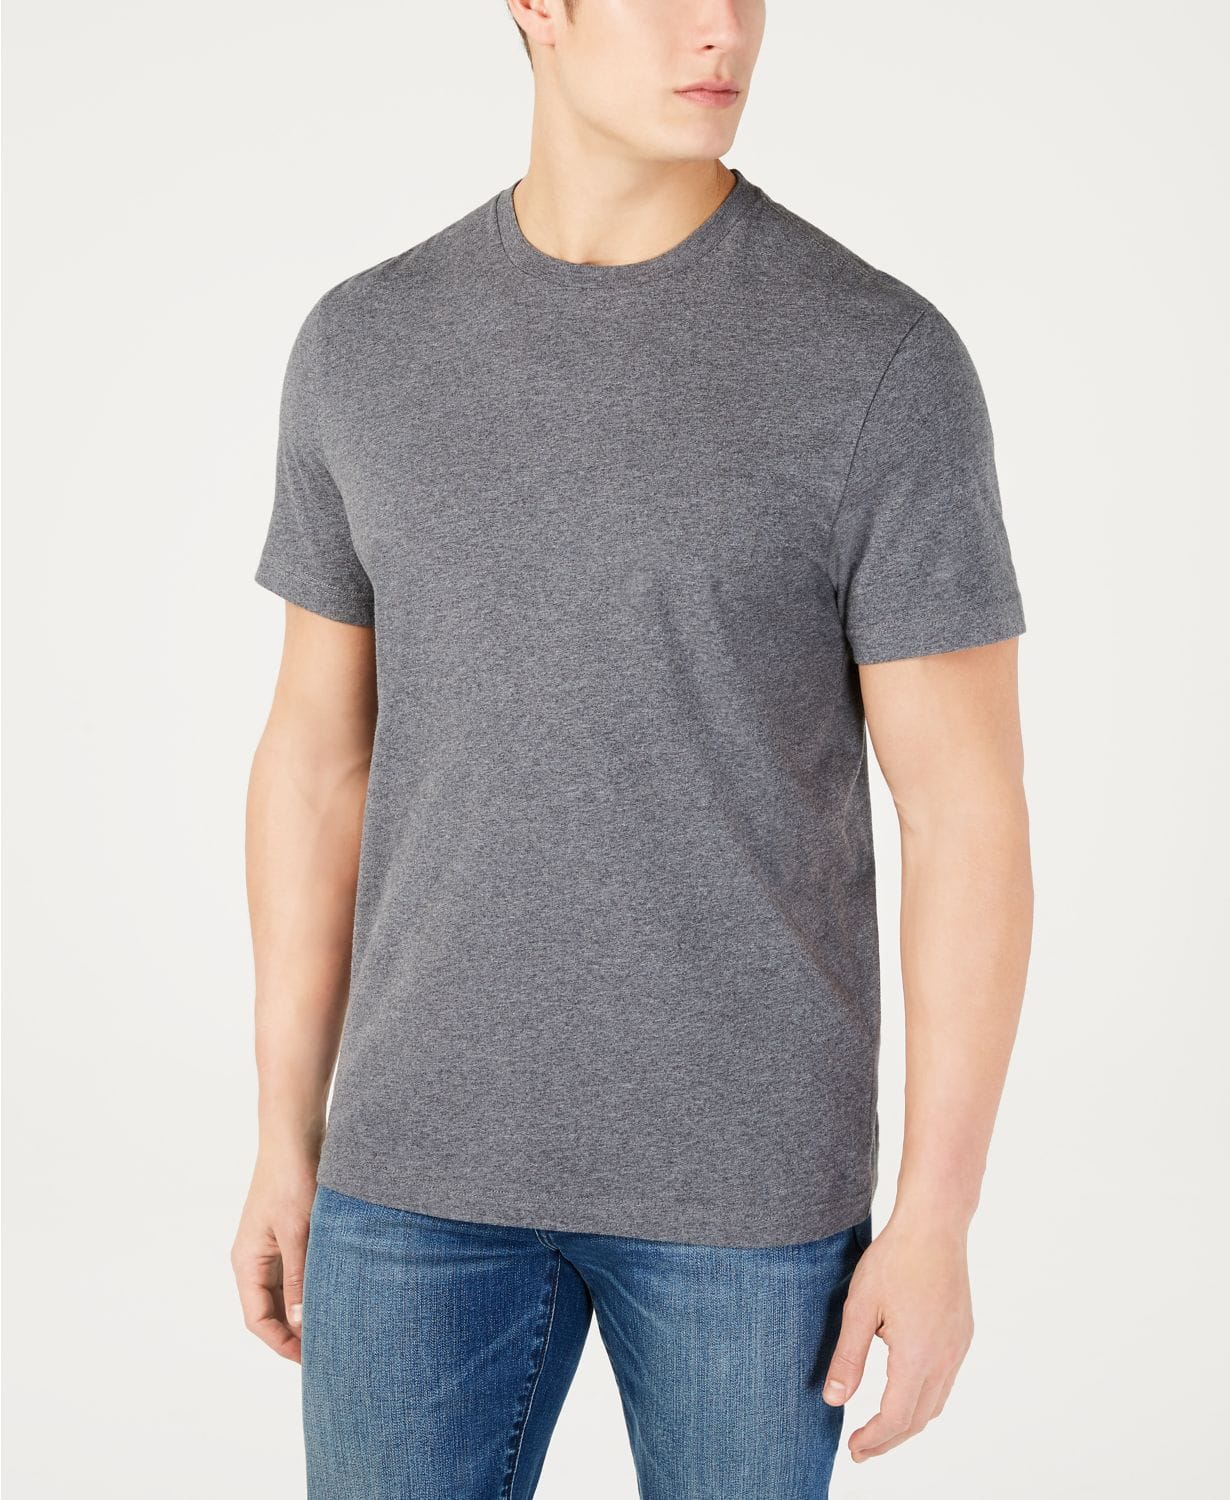 Club Room Men's Performance Crew Neck T-Shirt or Pocket T-Shirt $4.99 each at Macys. Free Store Pickup or Free Ship at $25.